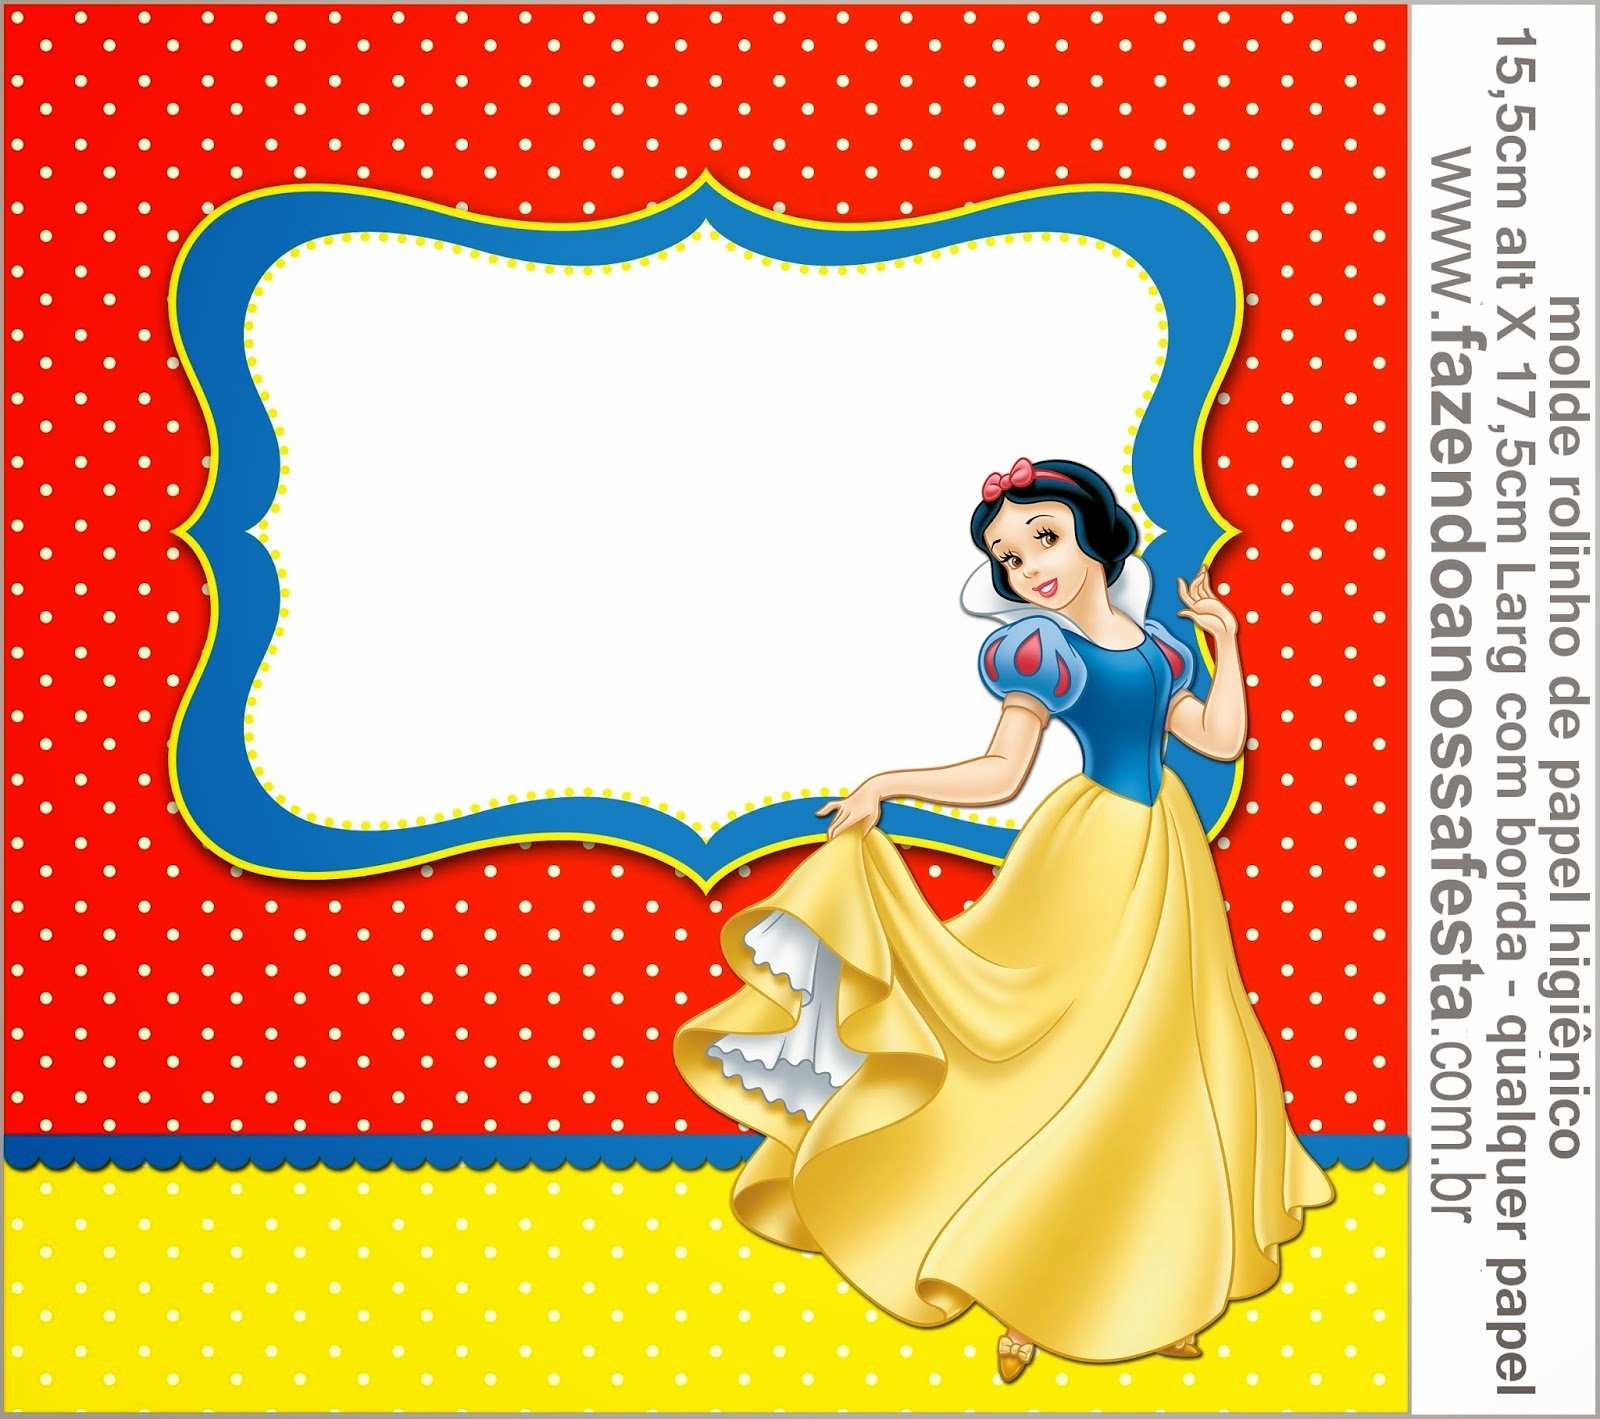 Marvelous Snow White Free Printable Candy Bar Labels Oh My Fiesta Interior Design Ideas Clesiryabchikinfo